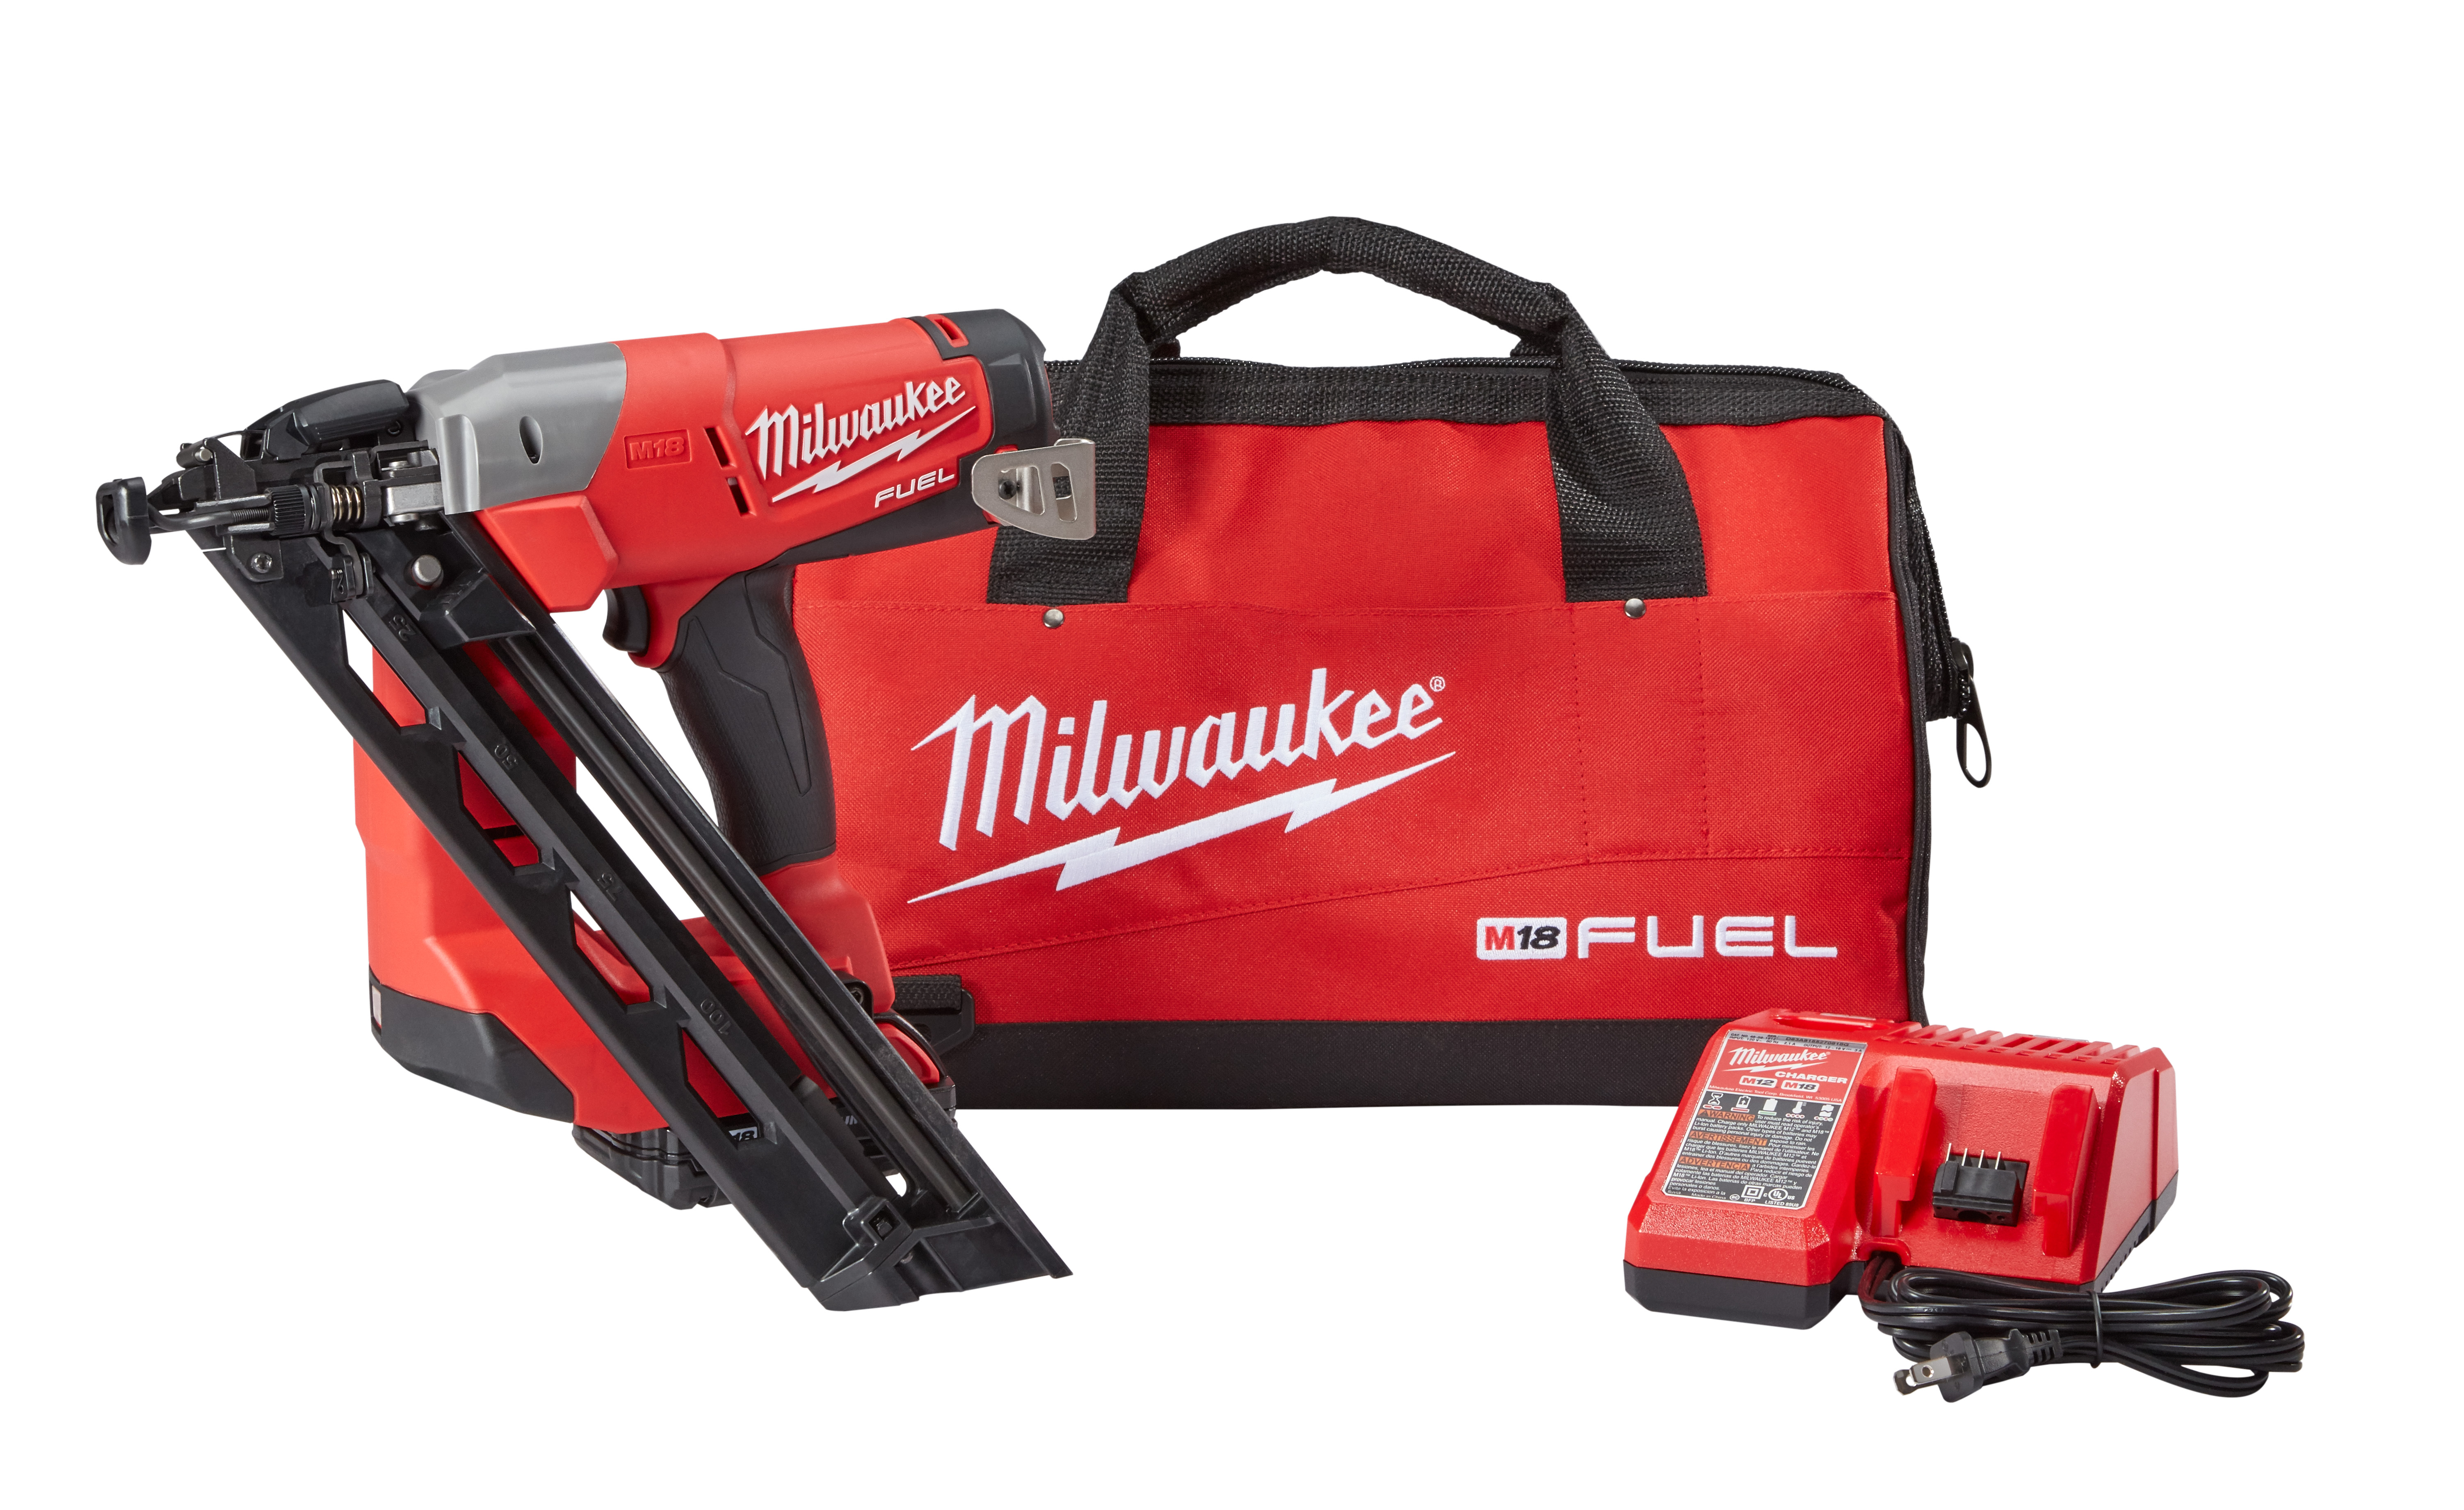 Milwaukee® M18™ FUEL™ 2743-21CT Cordless Finish Nailer Kit, 1-1/4 to 2-1/2 in Fastener, 110 Nails Nails Magazine, 11-29/32 in OAL, Battery